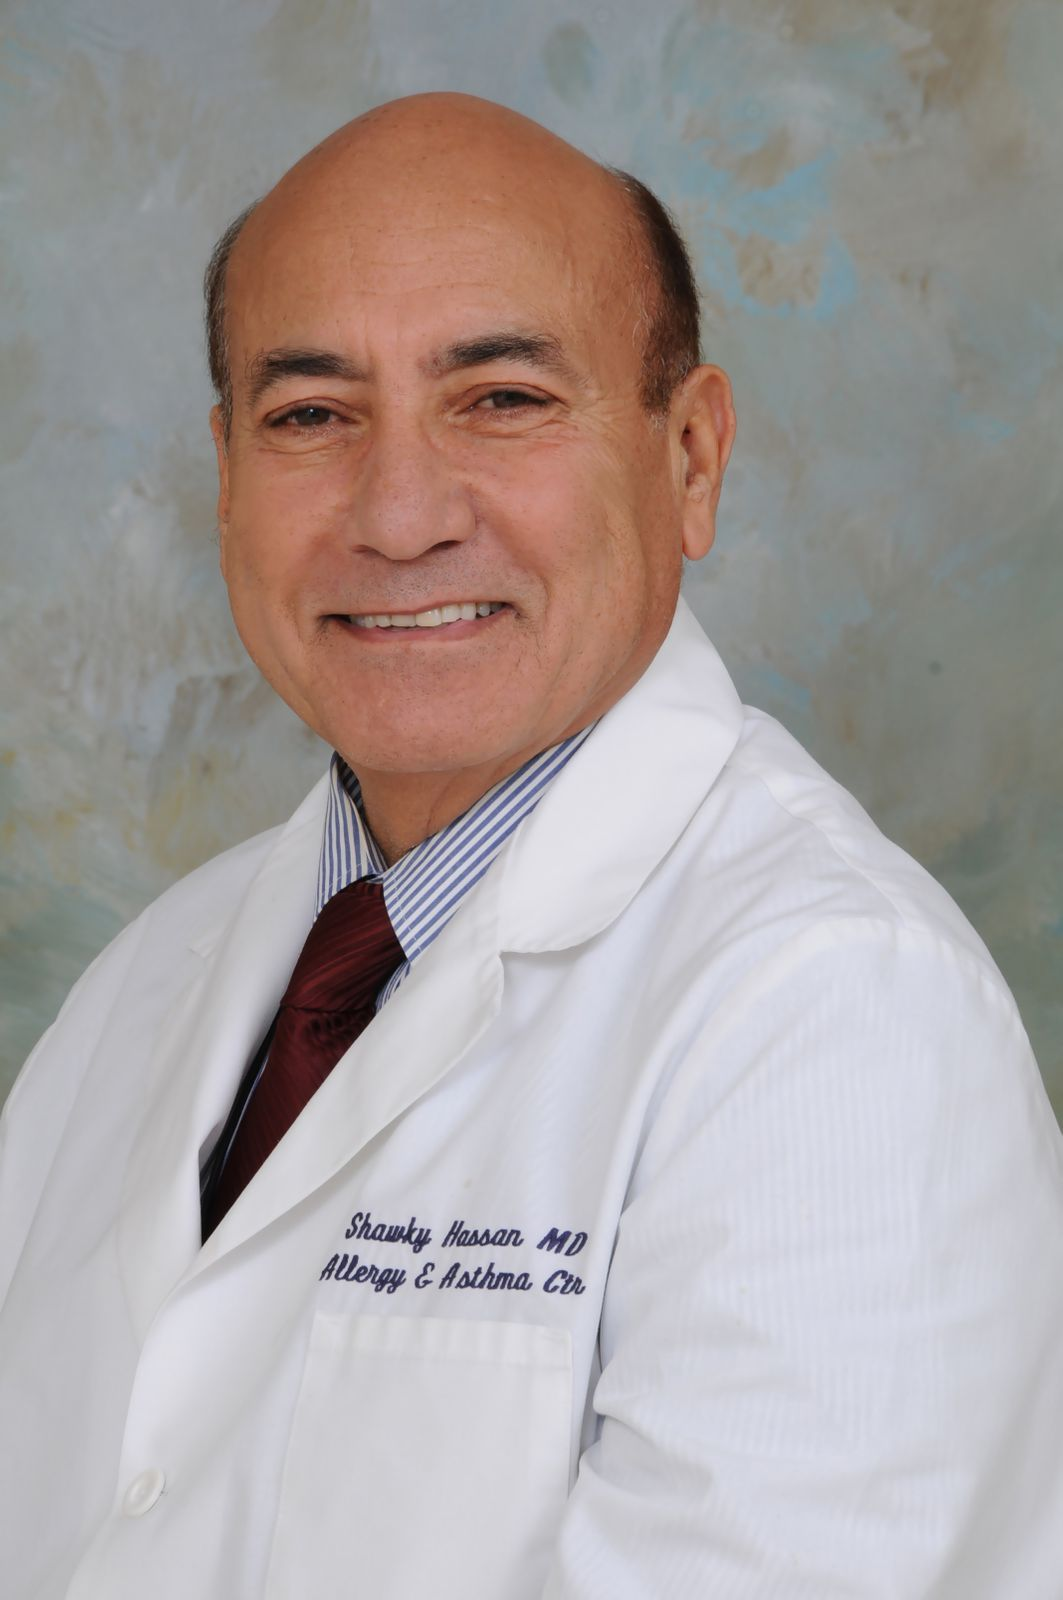 Shawky A Hassan, MD, PhD